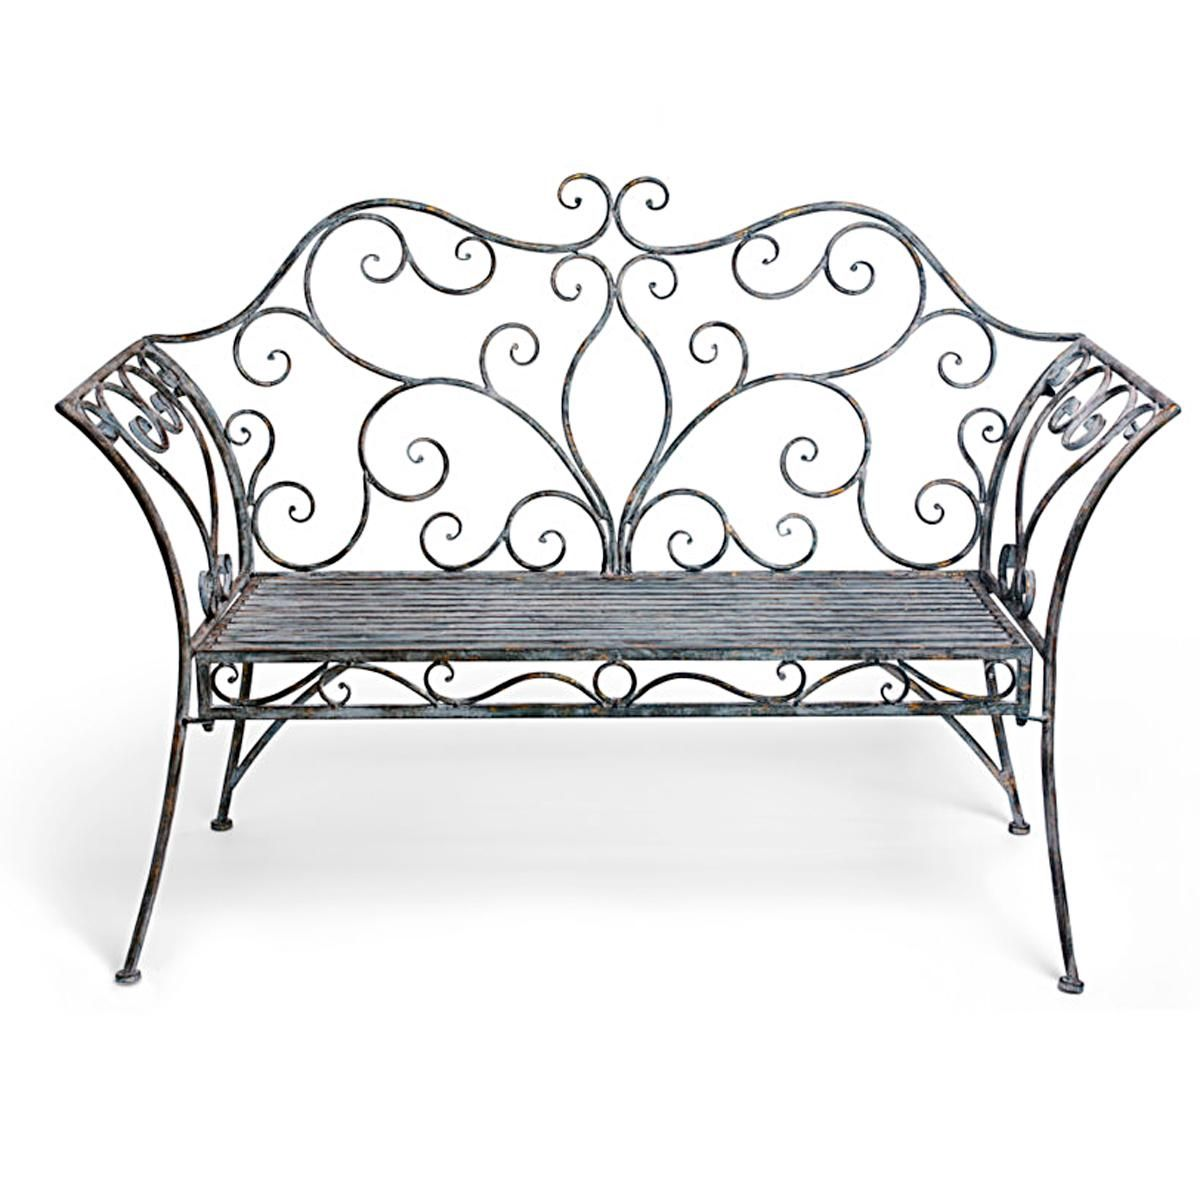 French Iron Scroll Metal Garden Bench For Seats With Chiffon Woven